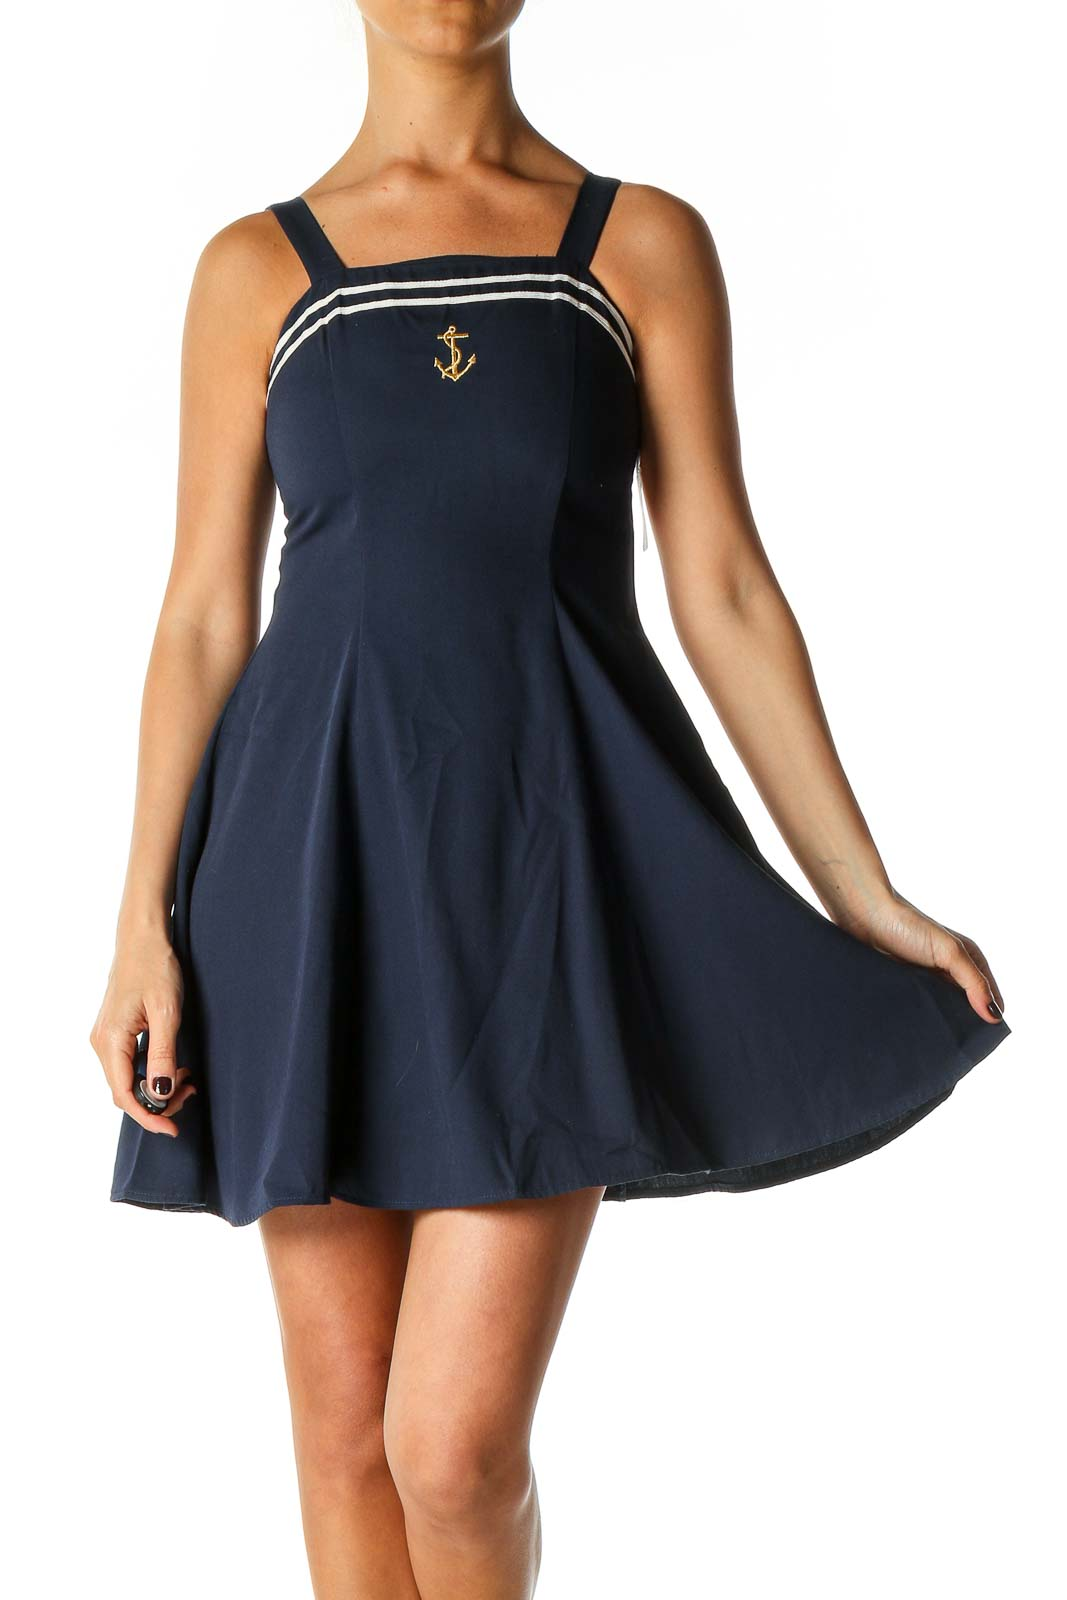 Blue Solid Casual Fit & Flare Dress Front